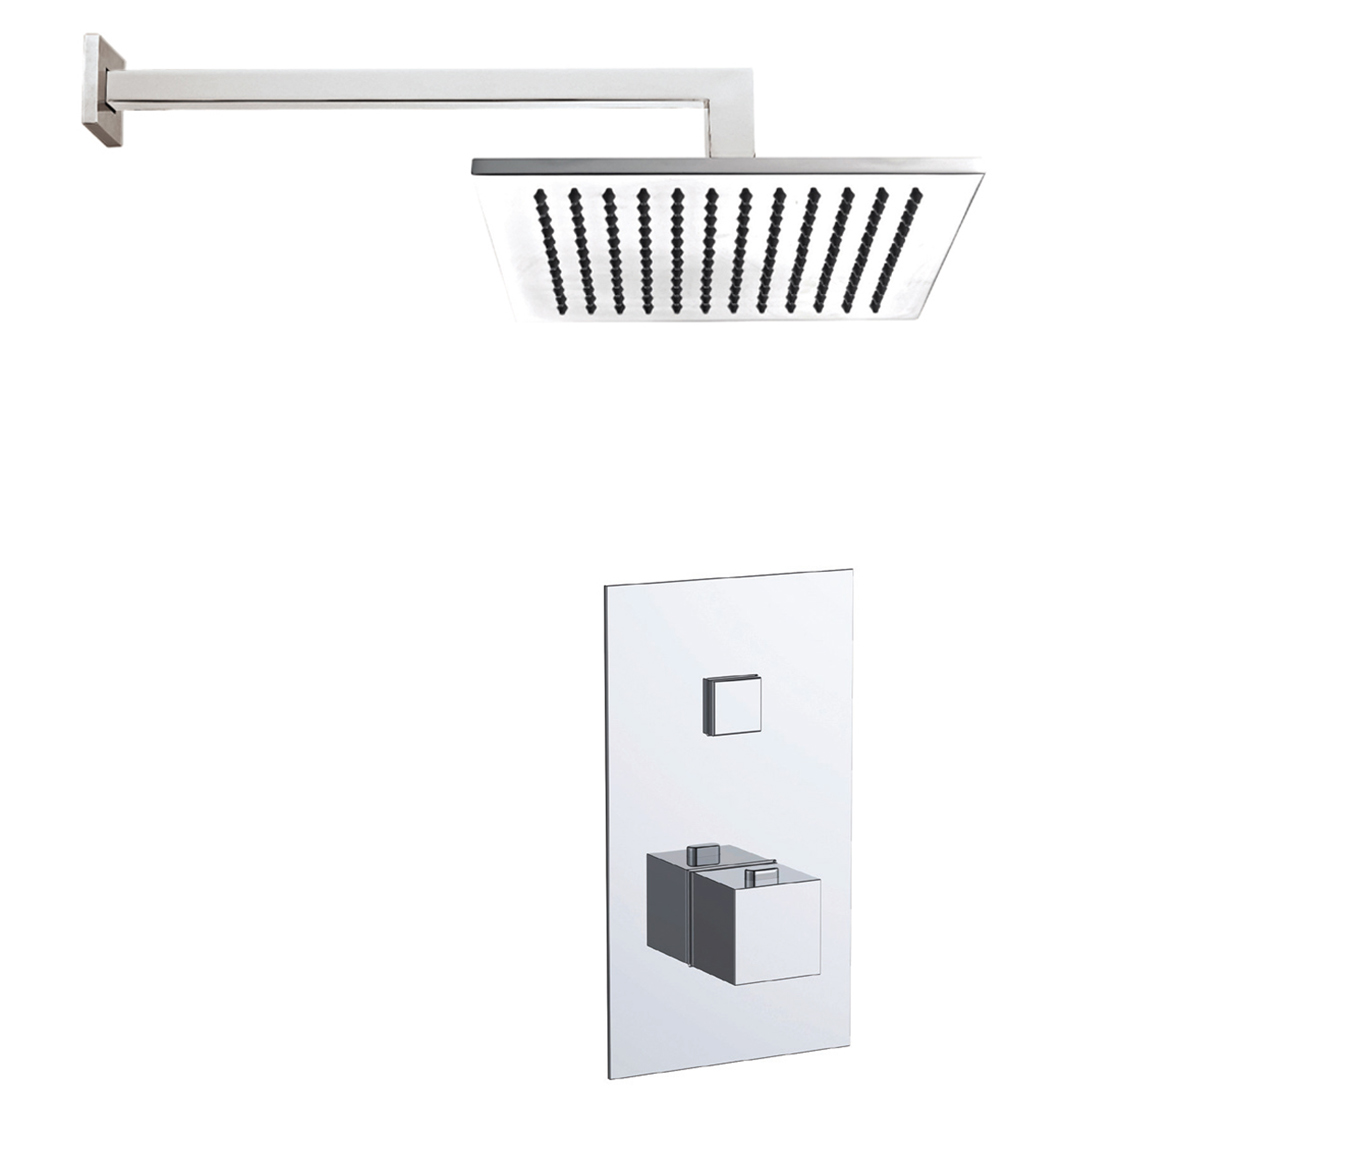 Athena 1 Outlet Touch Thermostat with Overhead Shower